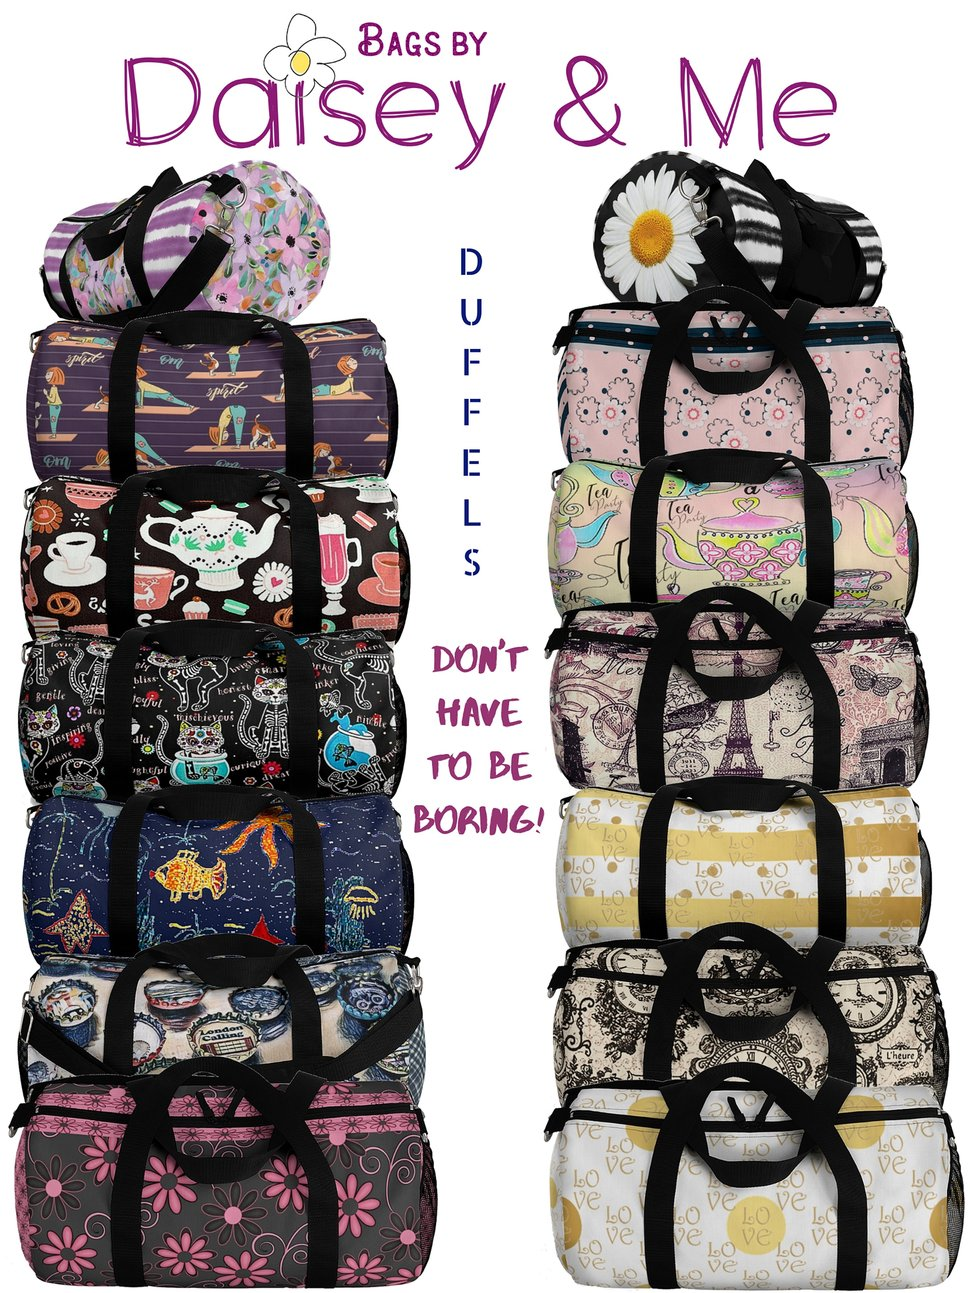 Pet Themed personalized designer tote bags, cell phone cases, laptop cases, mugs and travel sets for Pet Lovers